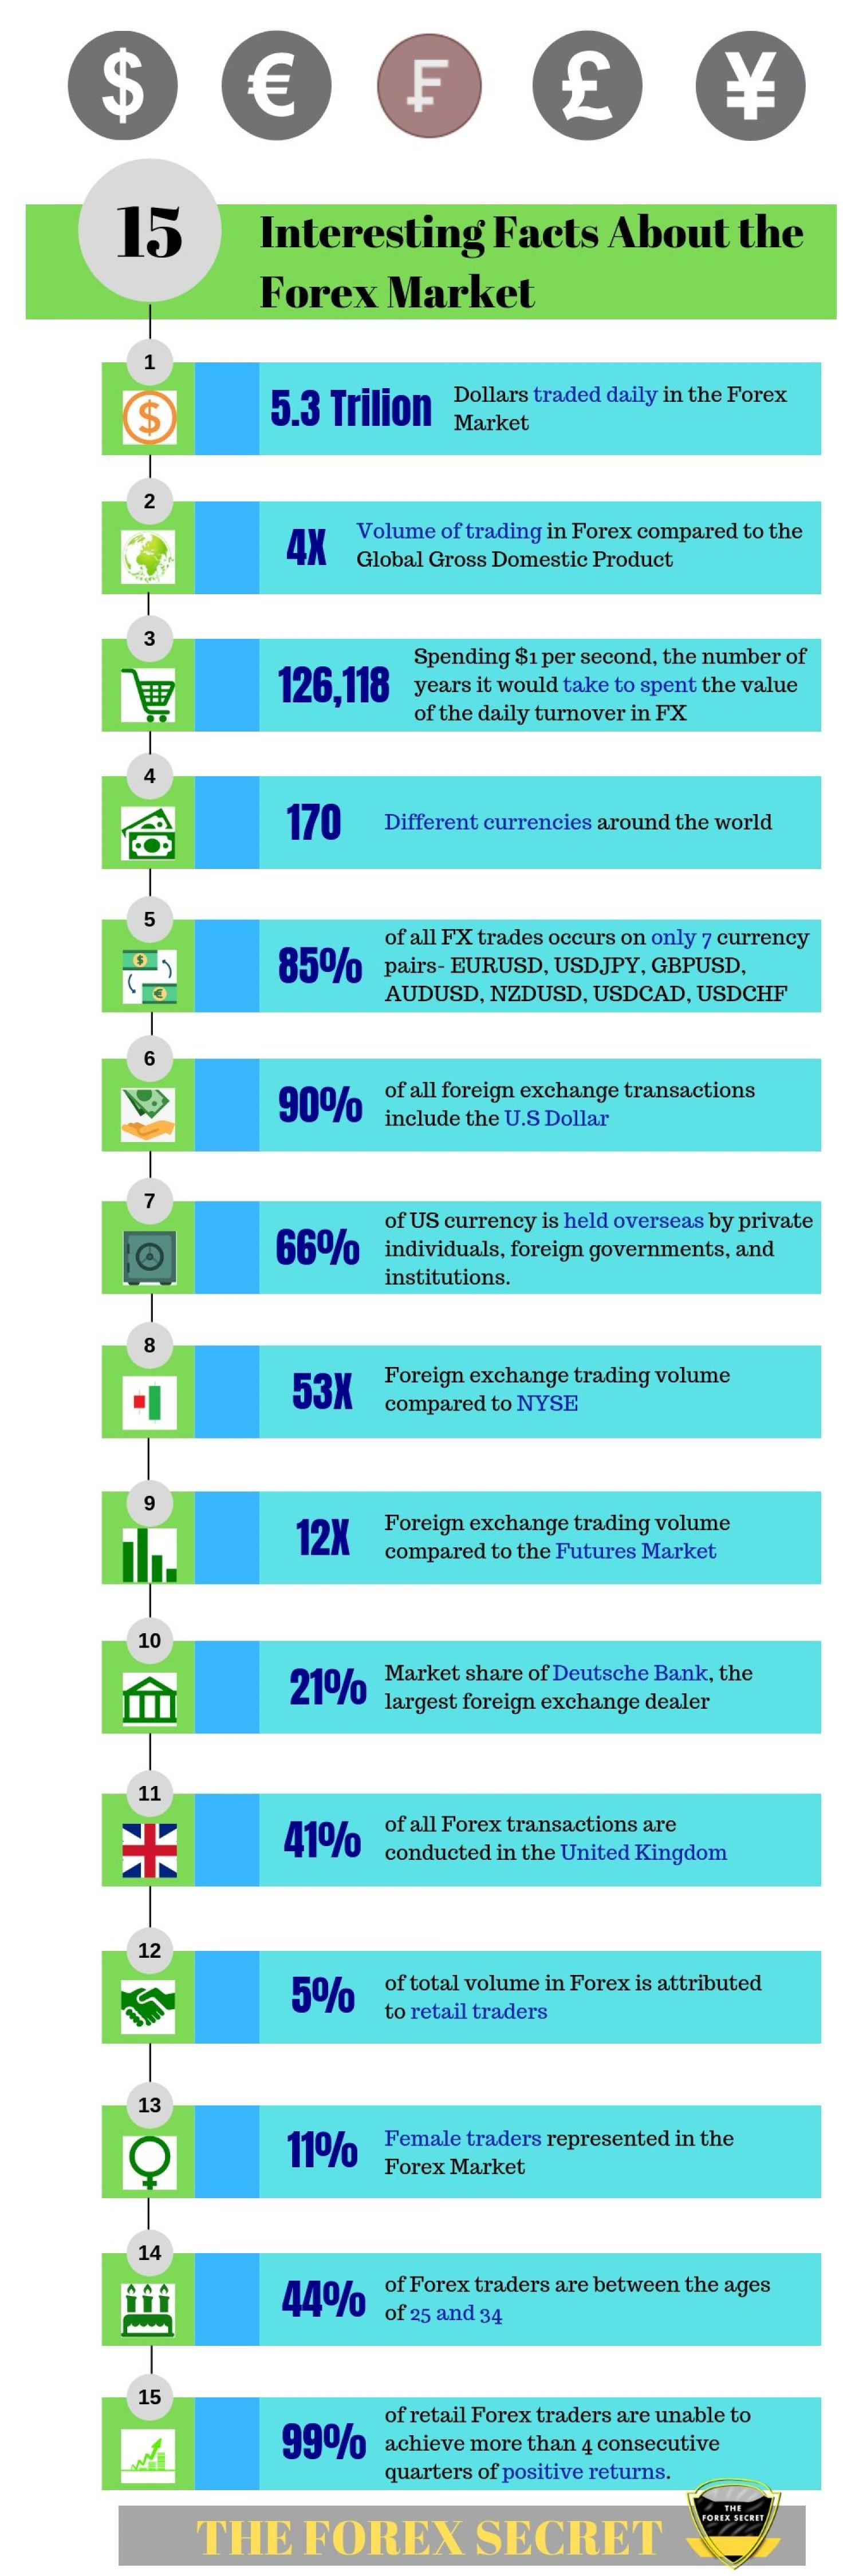 Interesting Facts About Forex Market Infographic